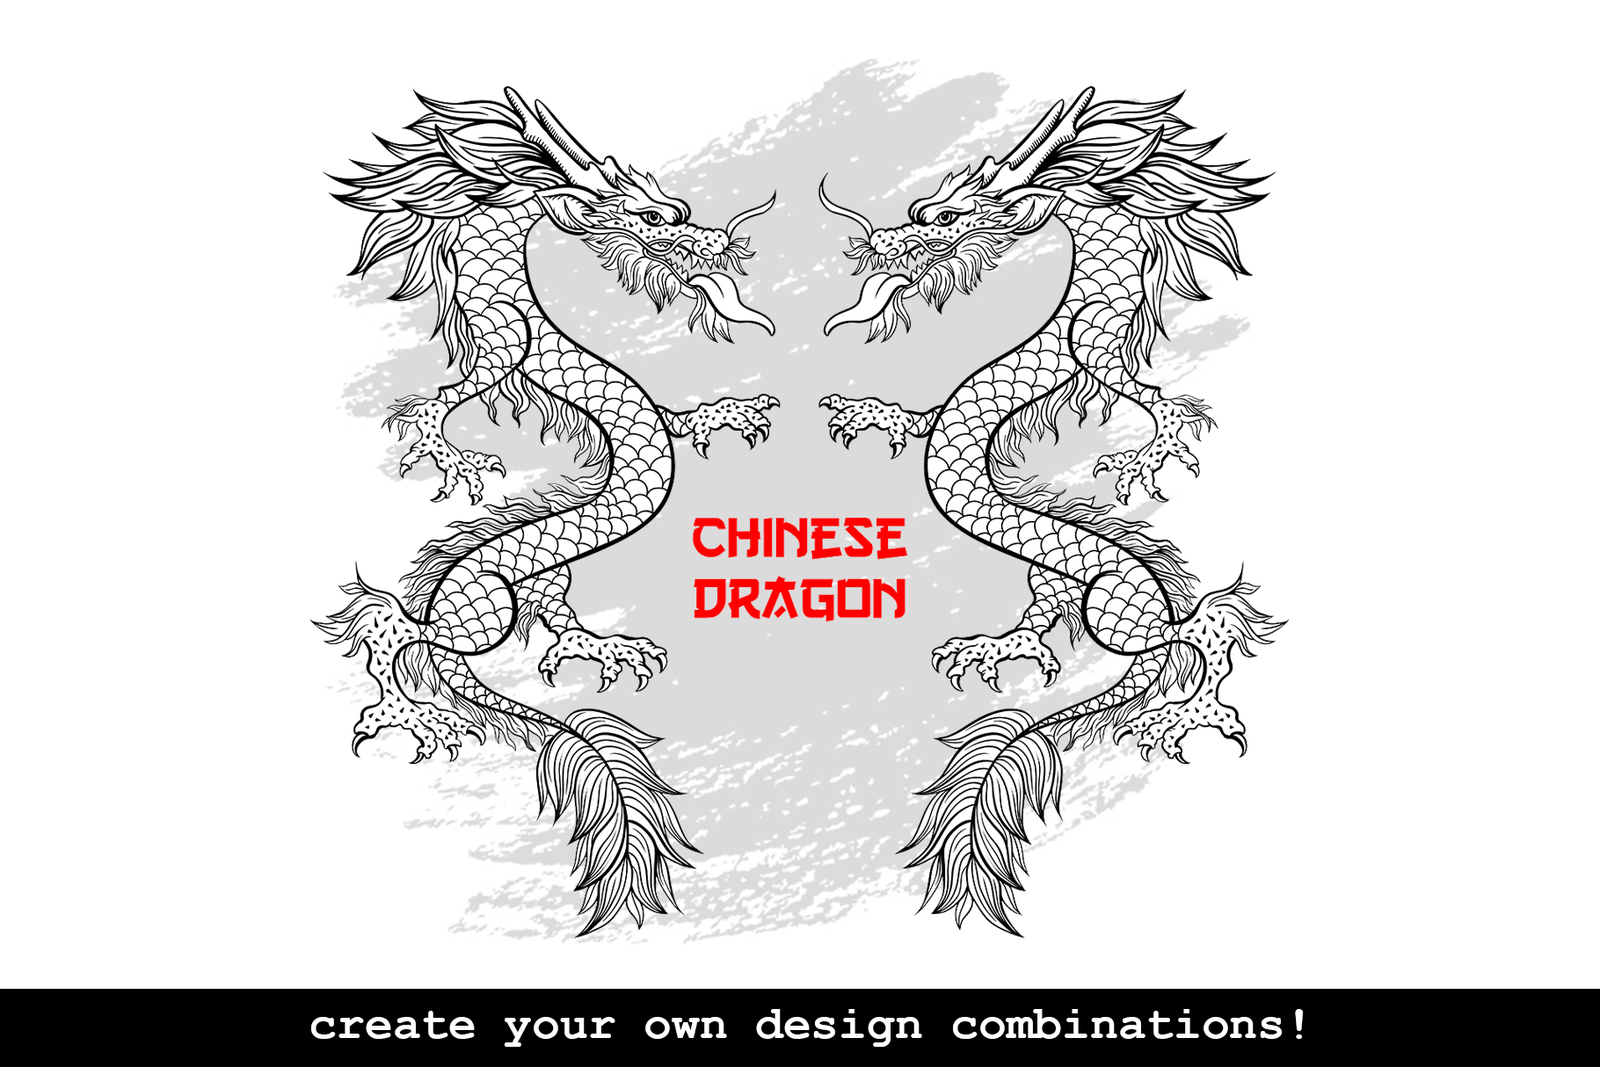 Chinese Dragon Vector Illustrations, Clouds and Patterns